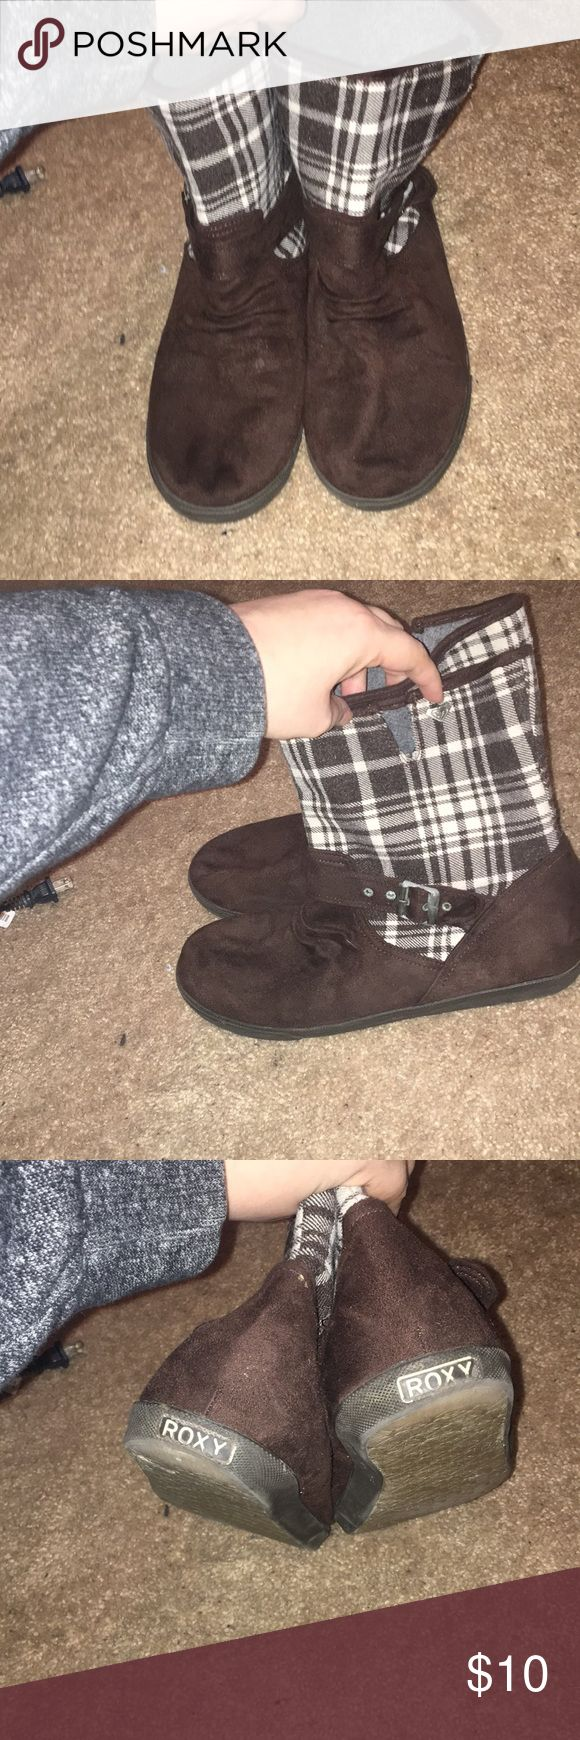 Mid calf Rocky boots size 9 Brown mid calf boots, super comfortable, gently worn Roxy Shoes Winter & Rain Boots